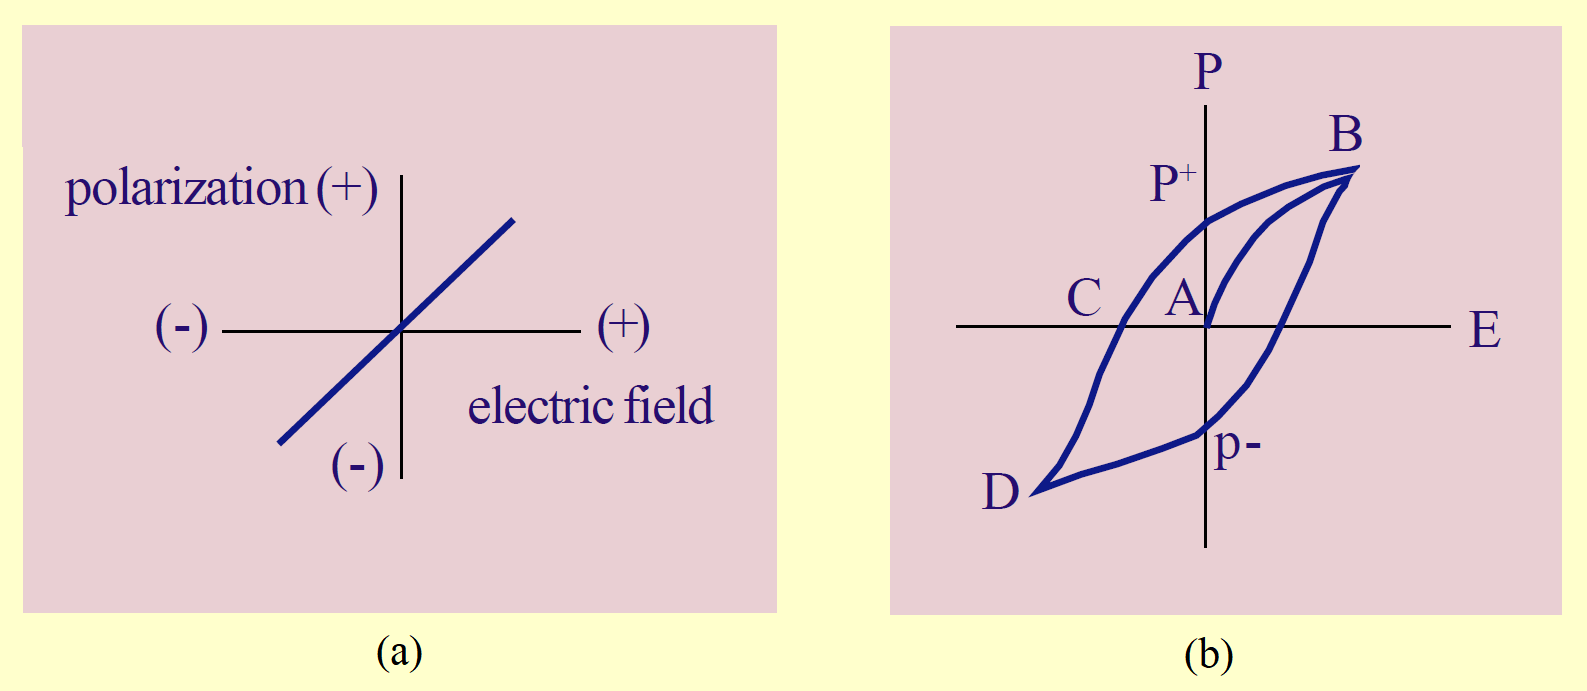 polarization of linear vs ferroelectric dielectrics